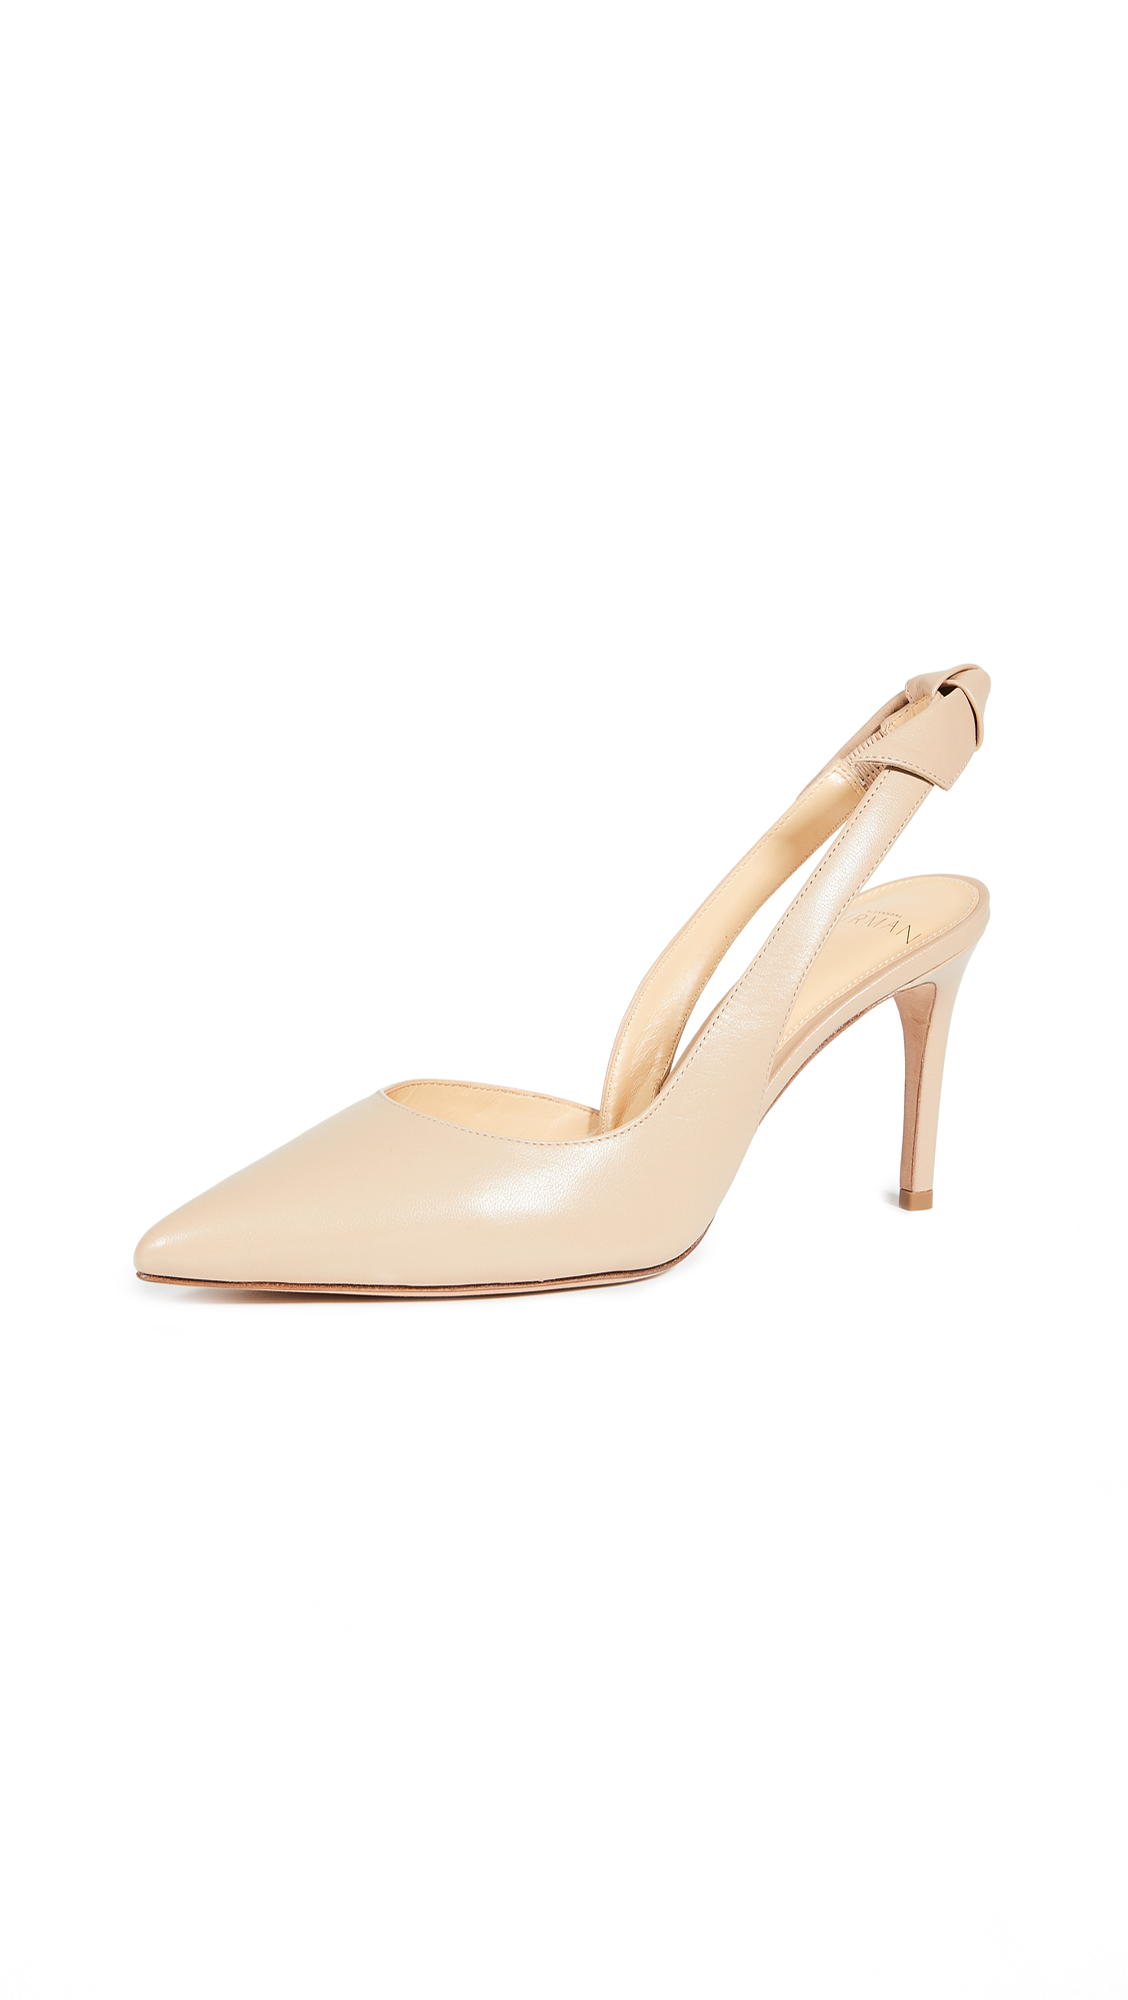 Alexandre Birman 85mm Clarita Slingbacks